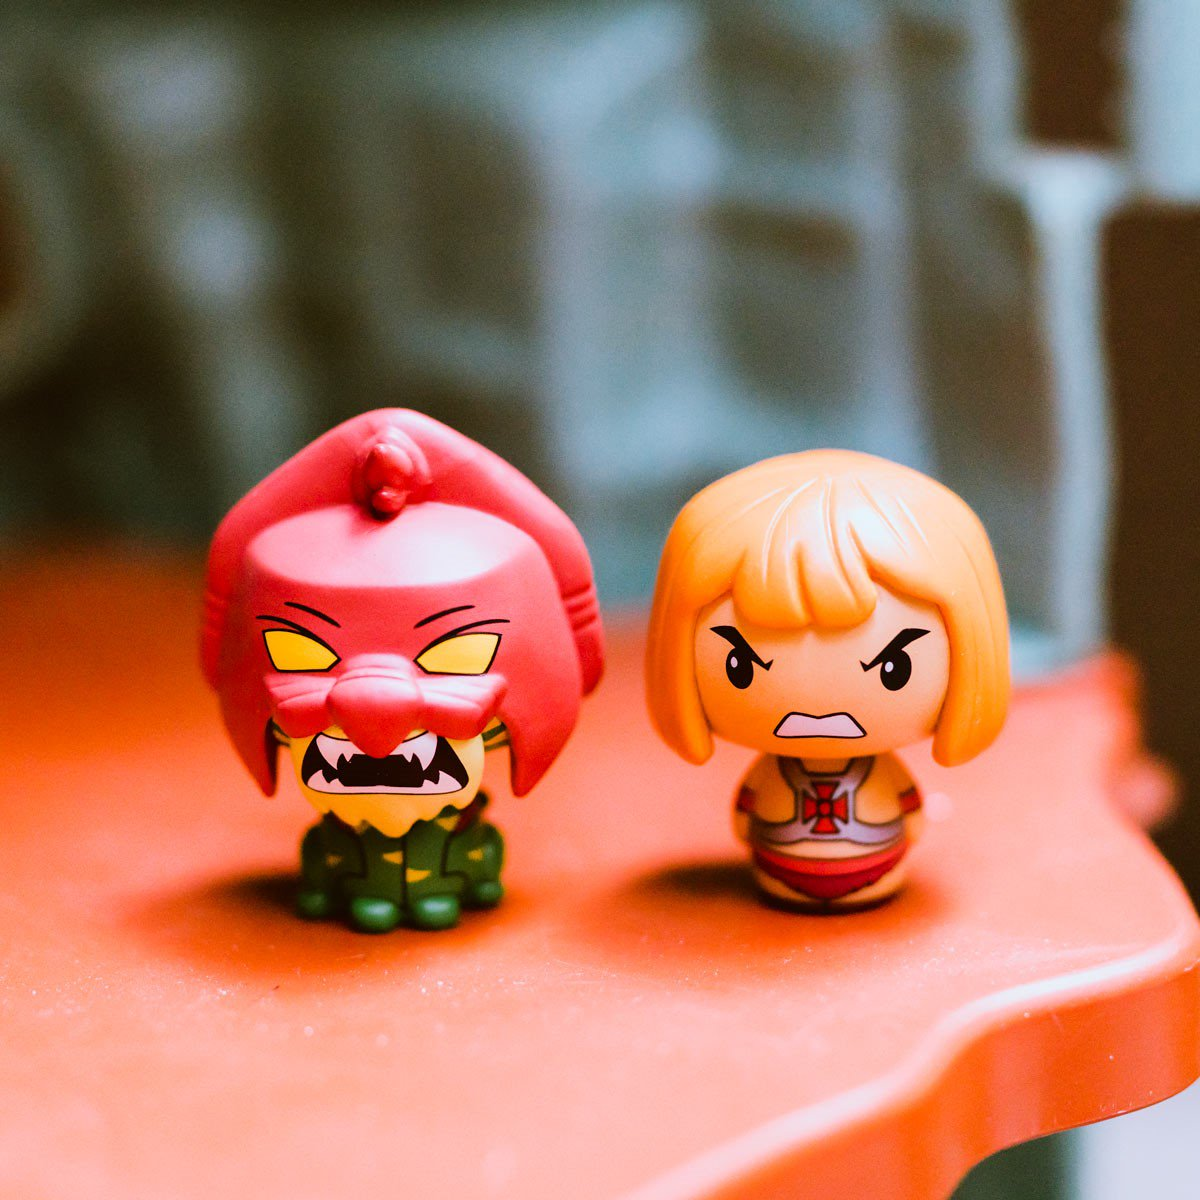 Time for Pint Size Heroes Happy Hour! Post a photo of your favorite PSH with #PSHHappyHour to play along!